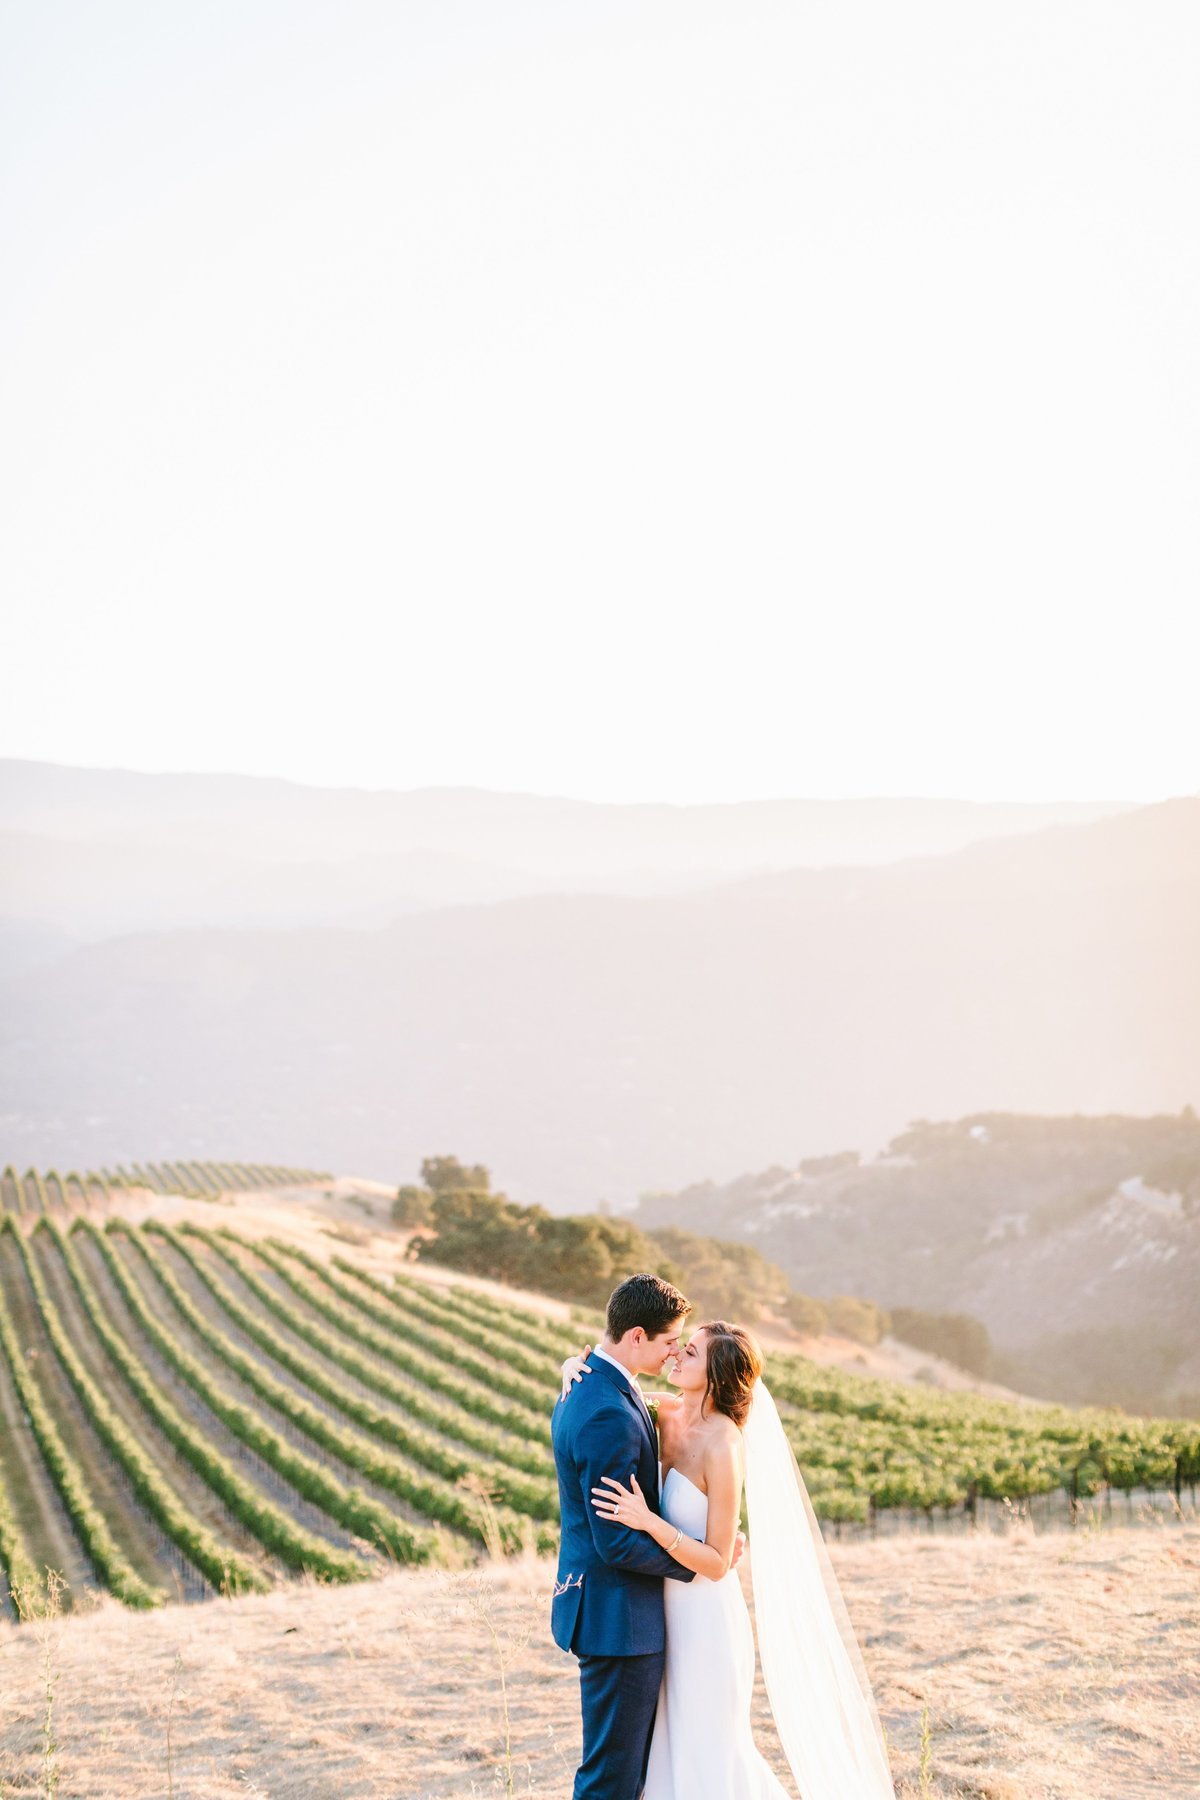 Best California Wedding Photographer-Jodee Debes Photography-187